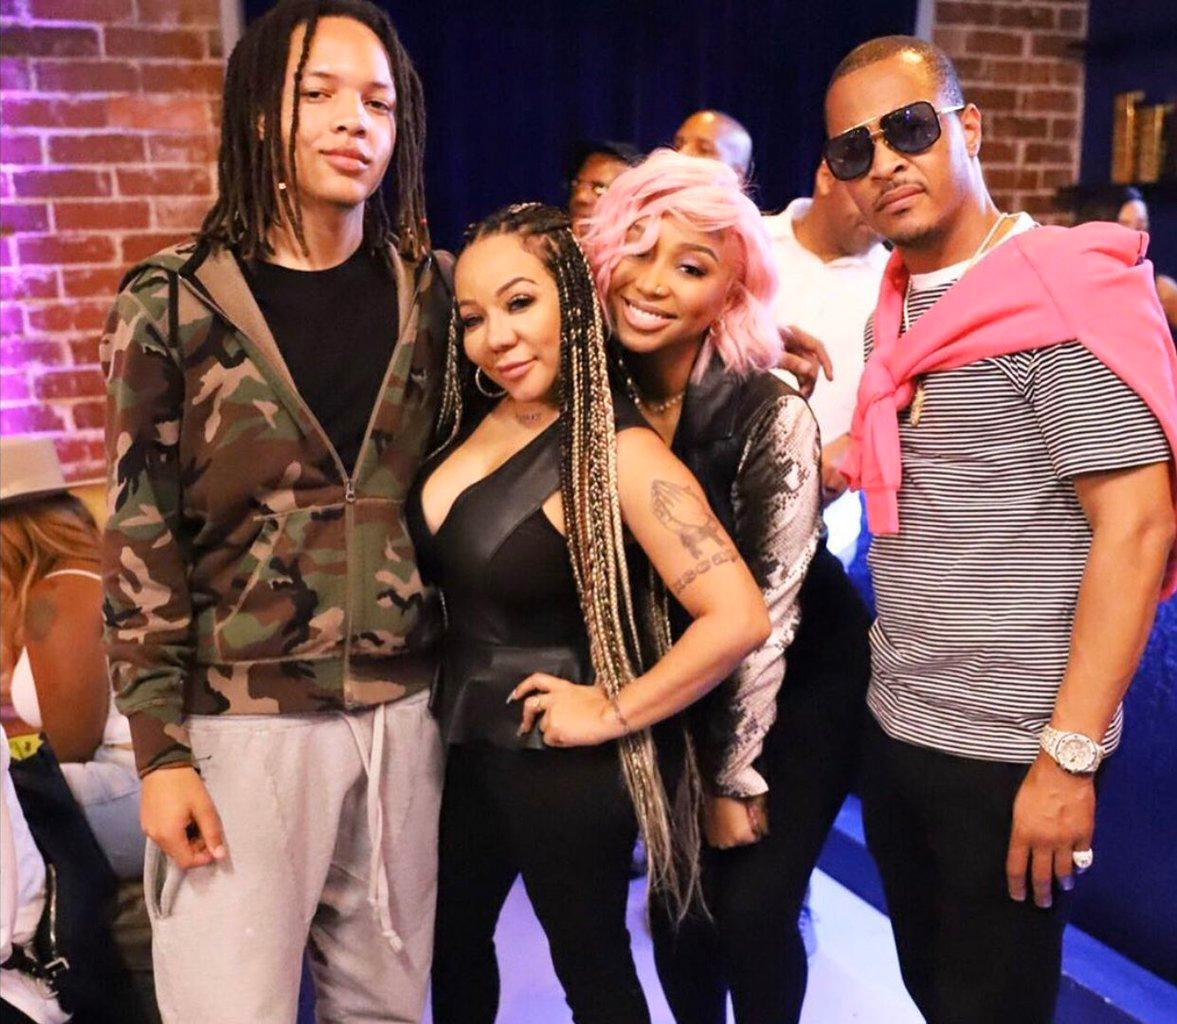 T.I. And Tiny Harris Visited The King George Floyd Memorial - See The Video